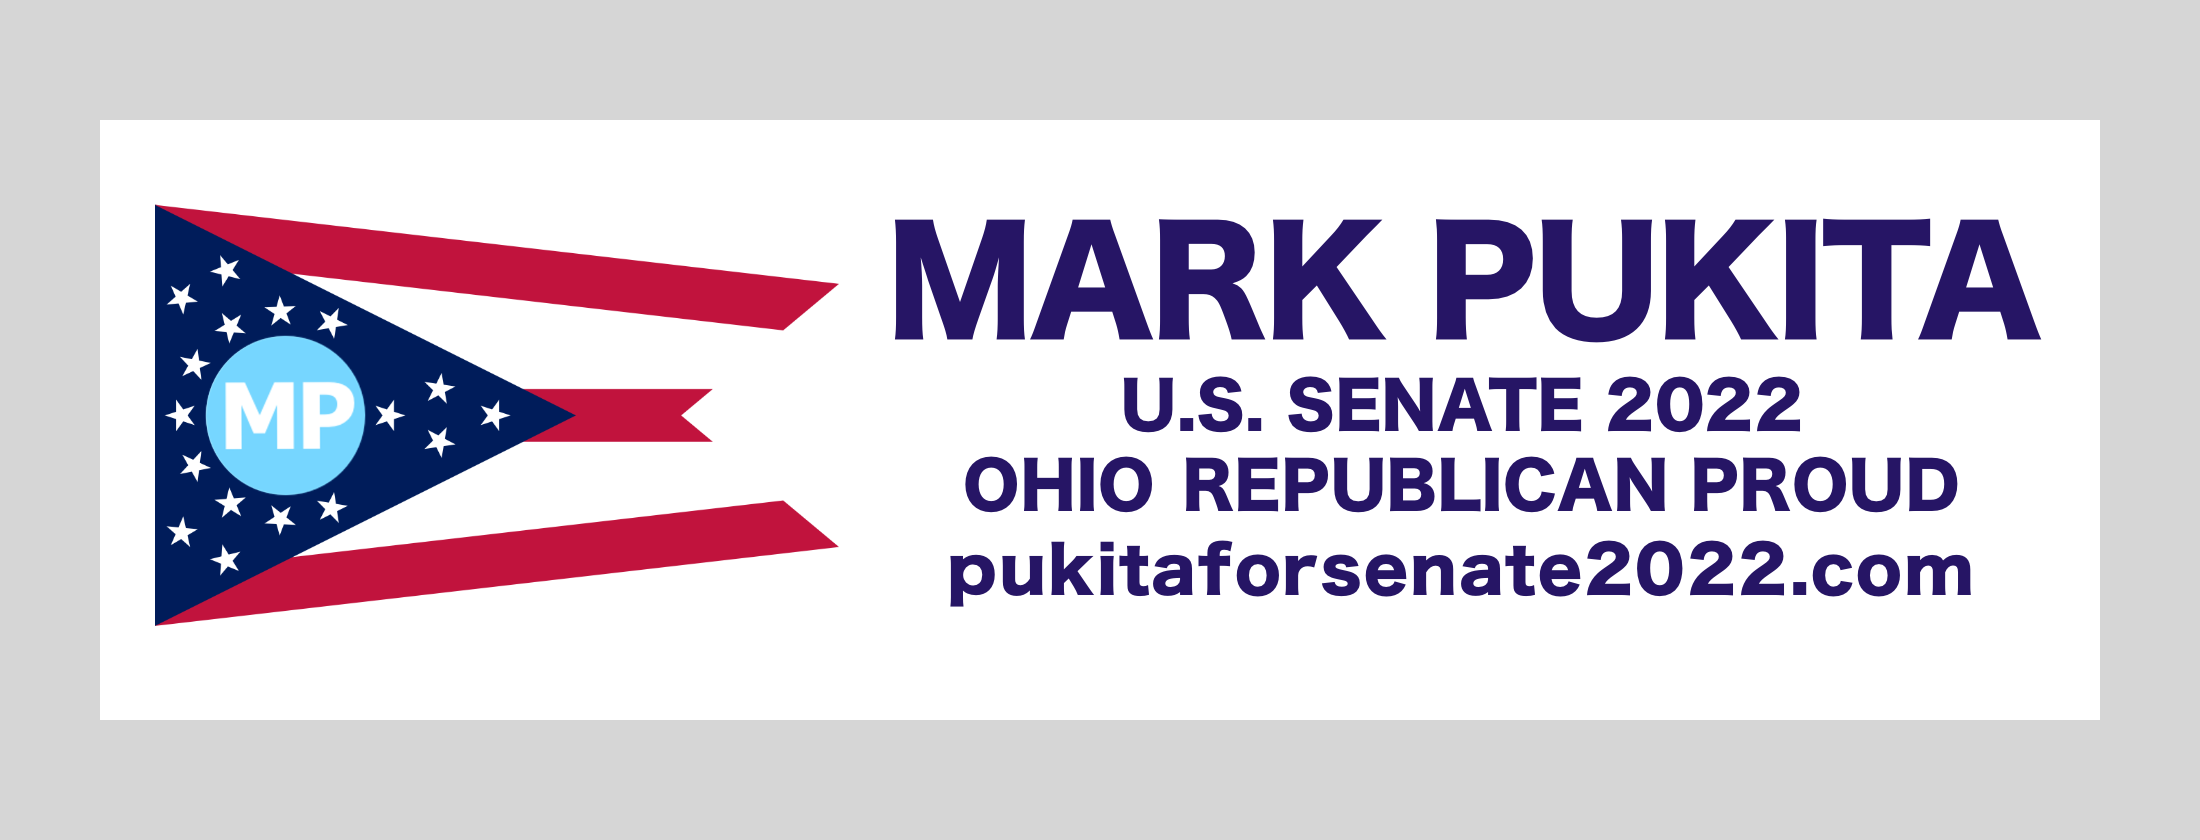 Mark_Pukita_-_US_Senate_2022_BUMPER_STICKER_copy_2.png